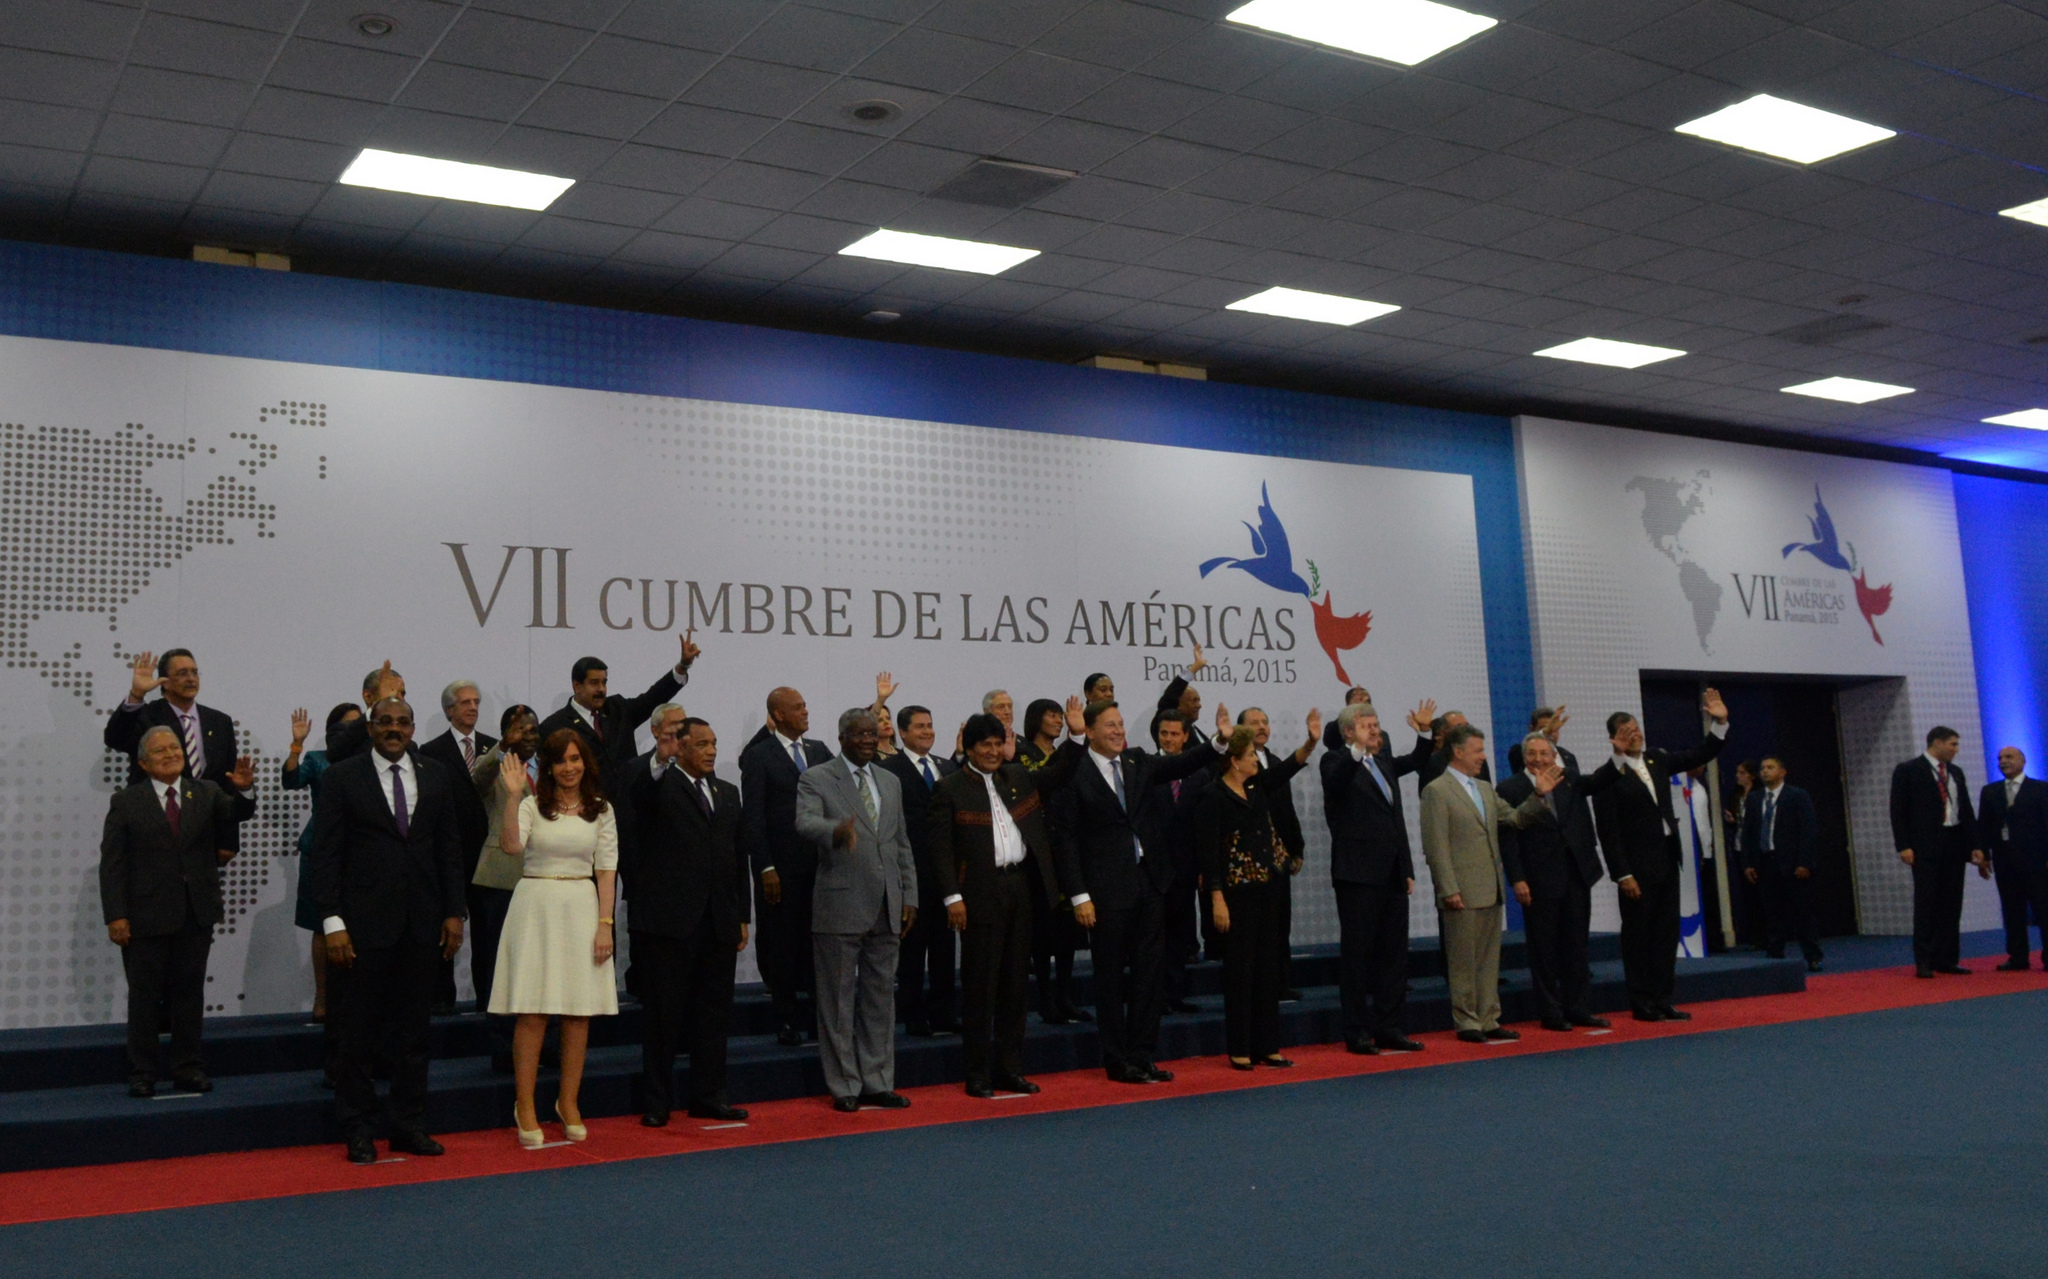 Large group of men and women stand awkwardly while waving to a crowd